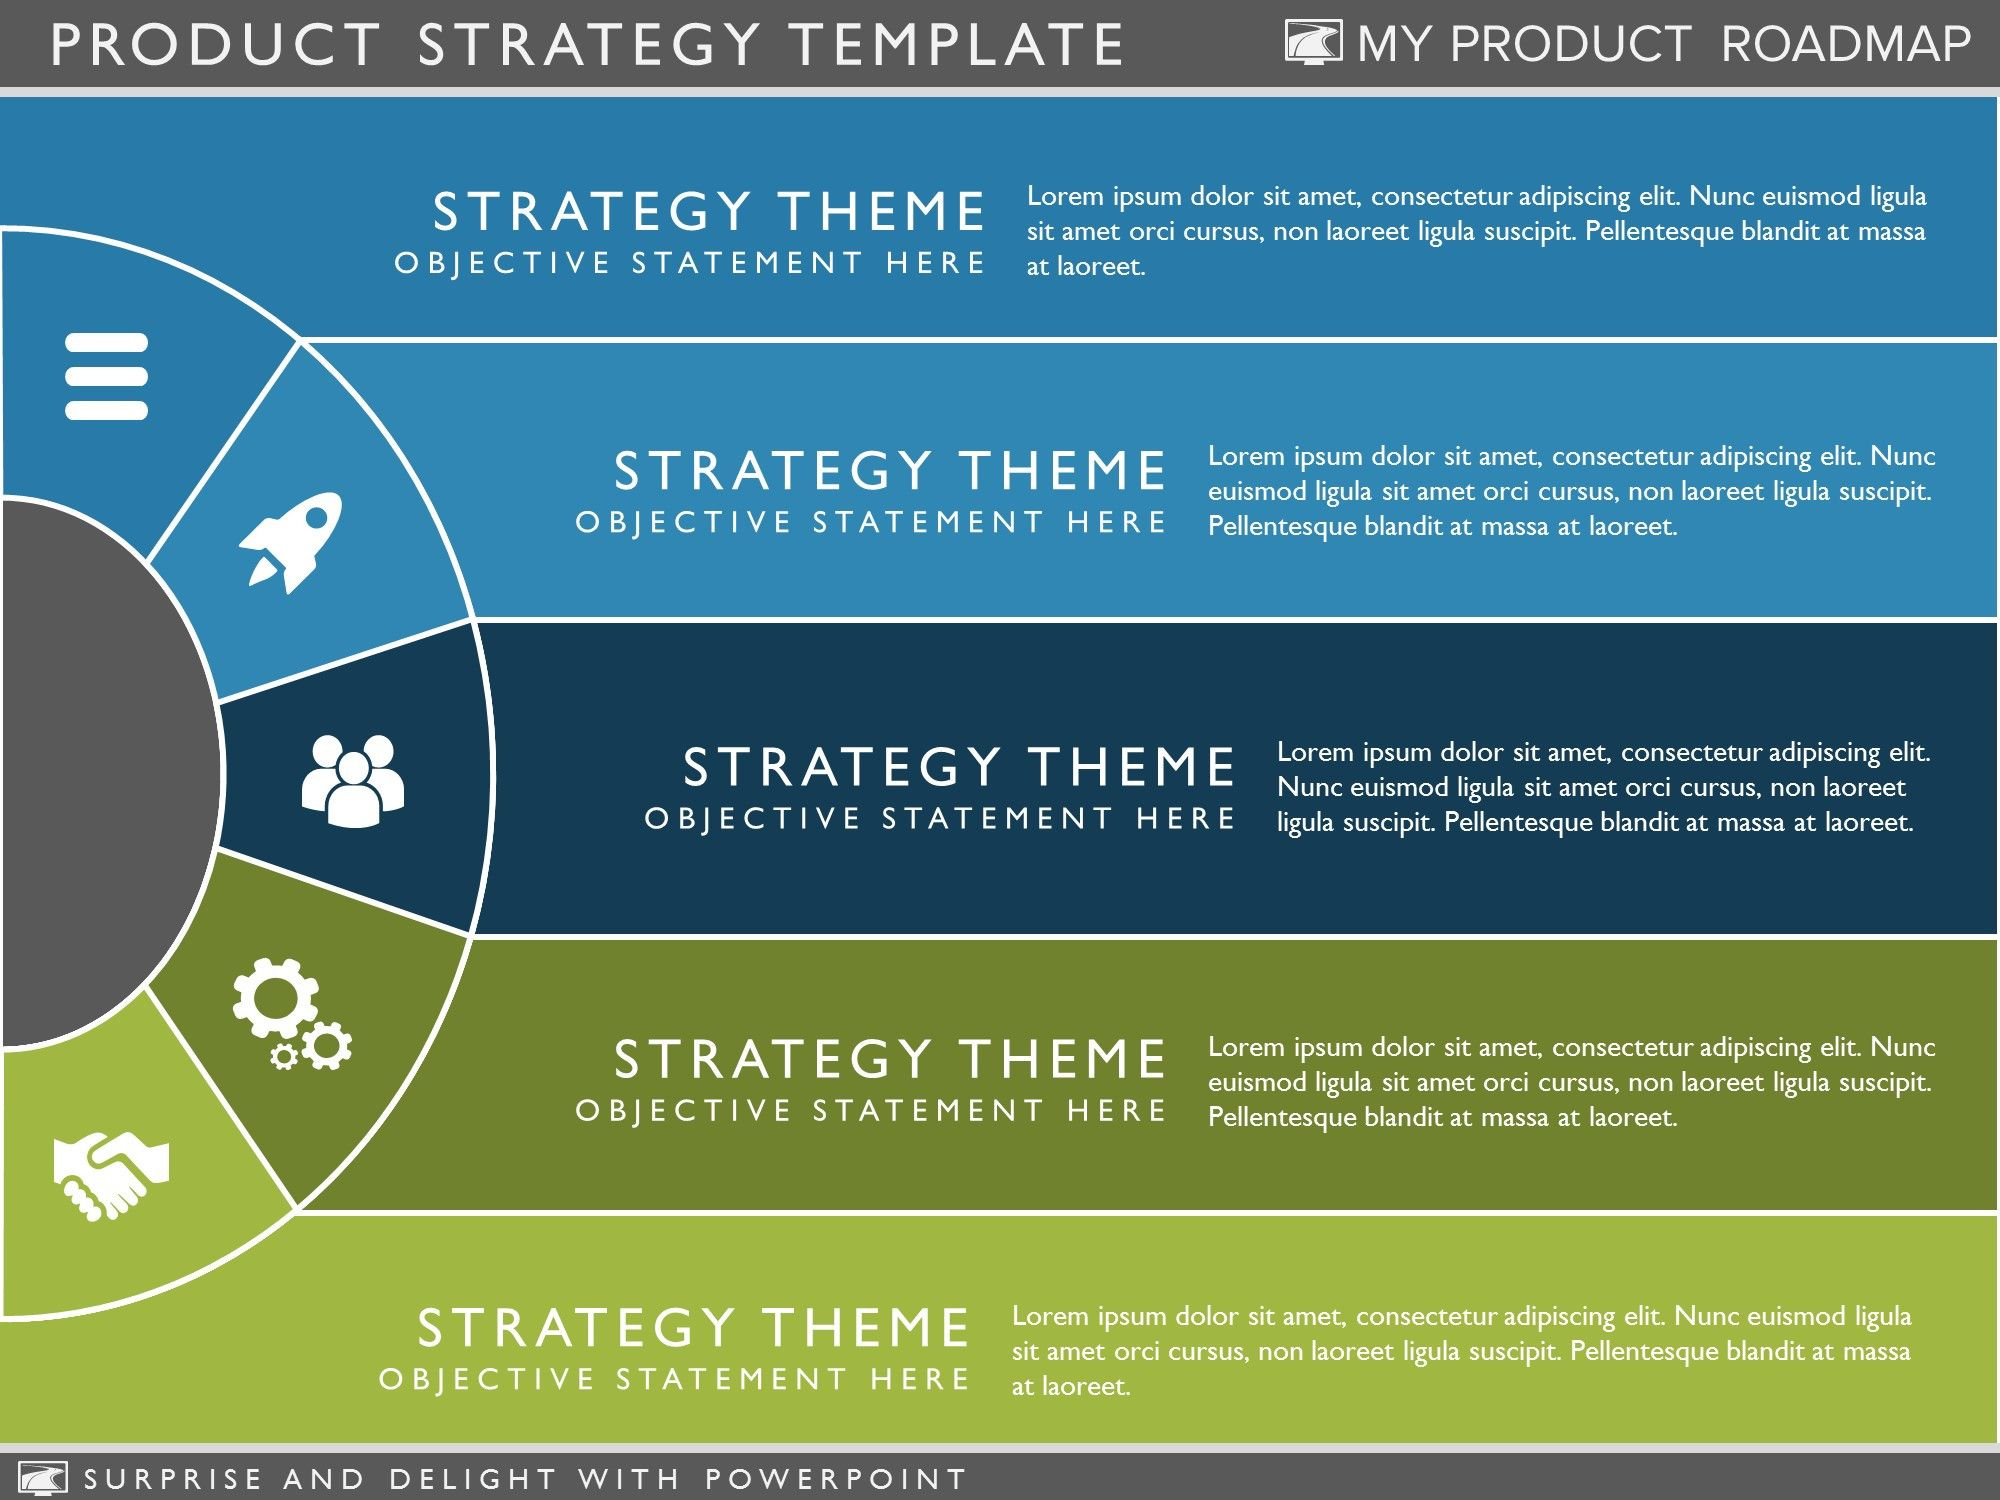 product strategy template clickfunnel hacks pinterest template infographics and marketing. Black Bedroom Furniture Sets. Home Design Ideas